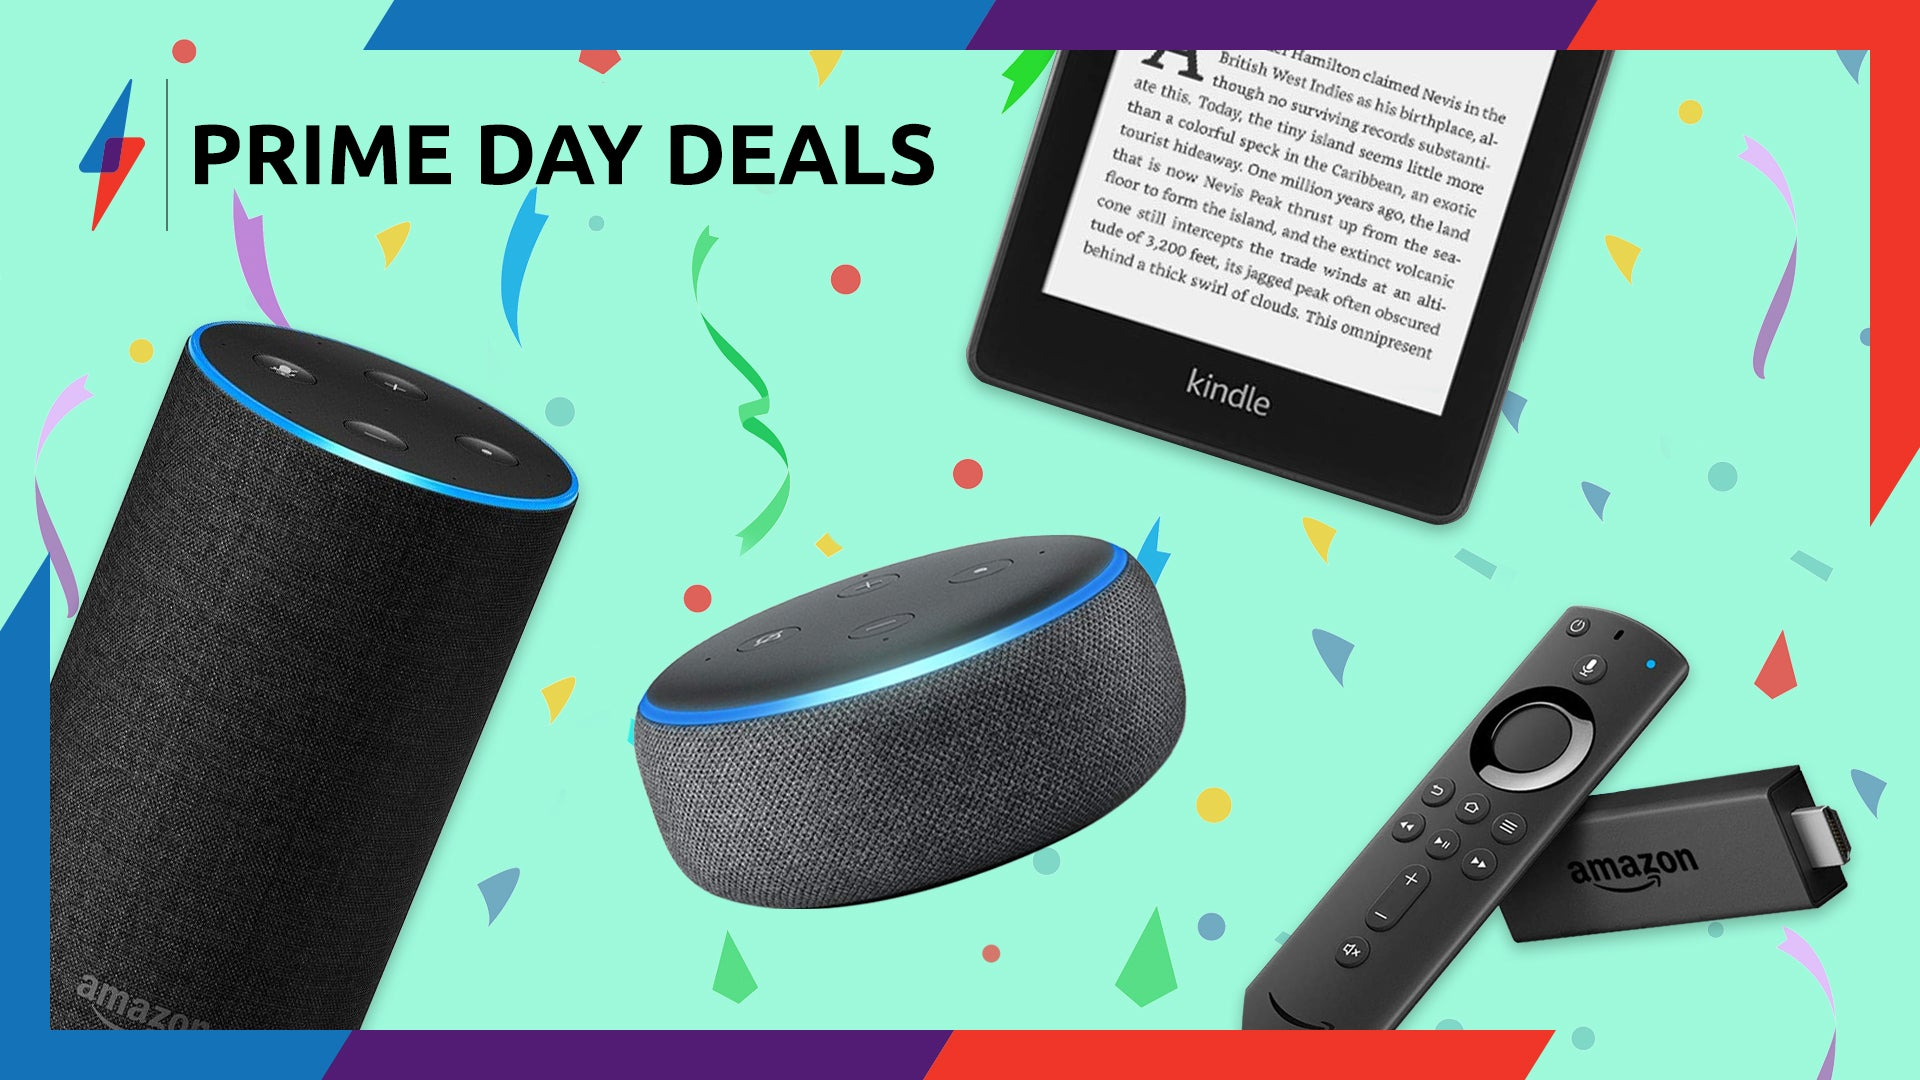 Prime Day 2019 cover image